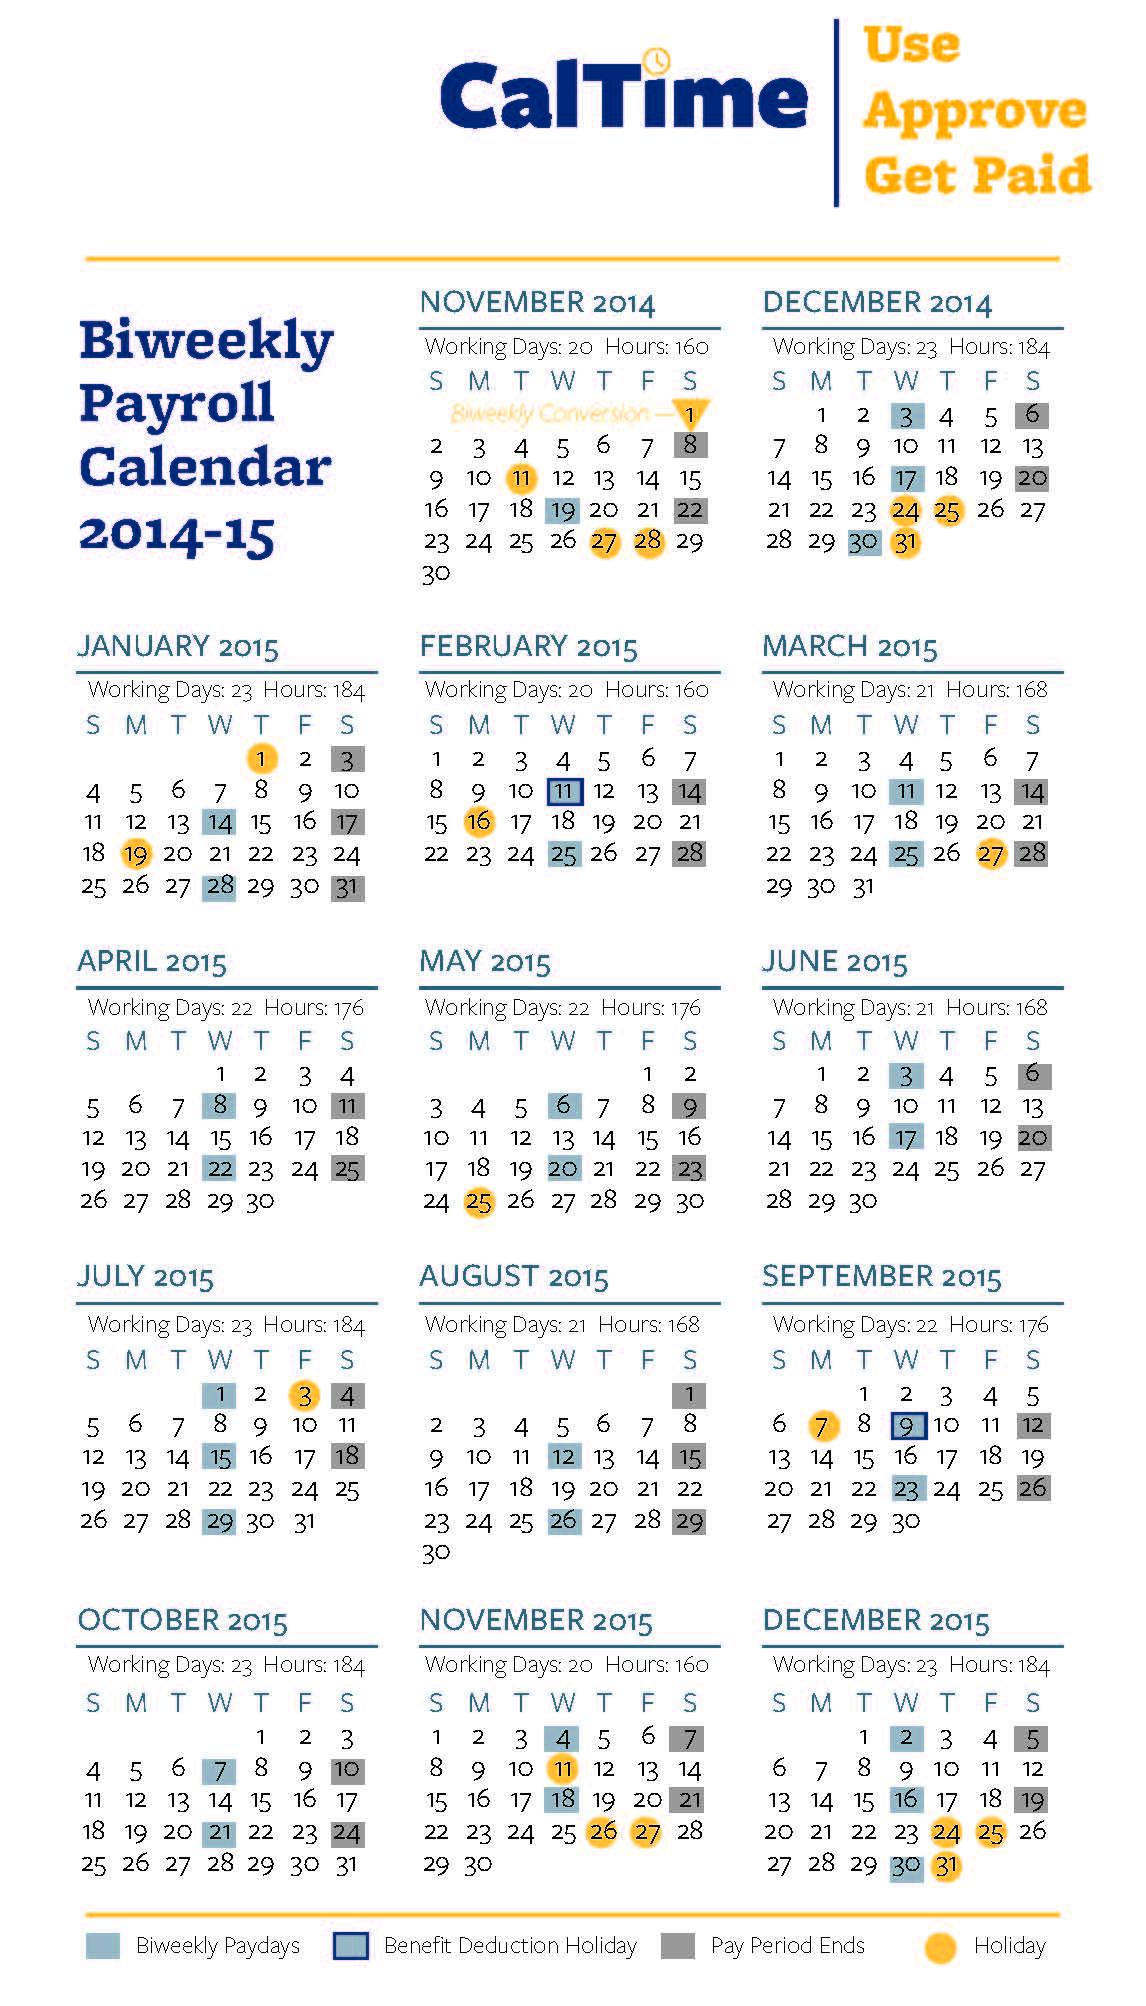 Download This Calendar To Printgtgt. Ucsf Biweekly Payroll Calendar ...